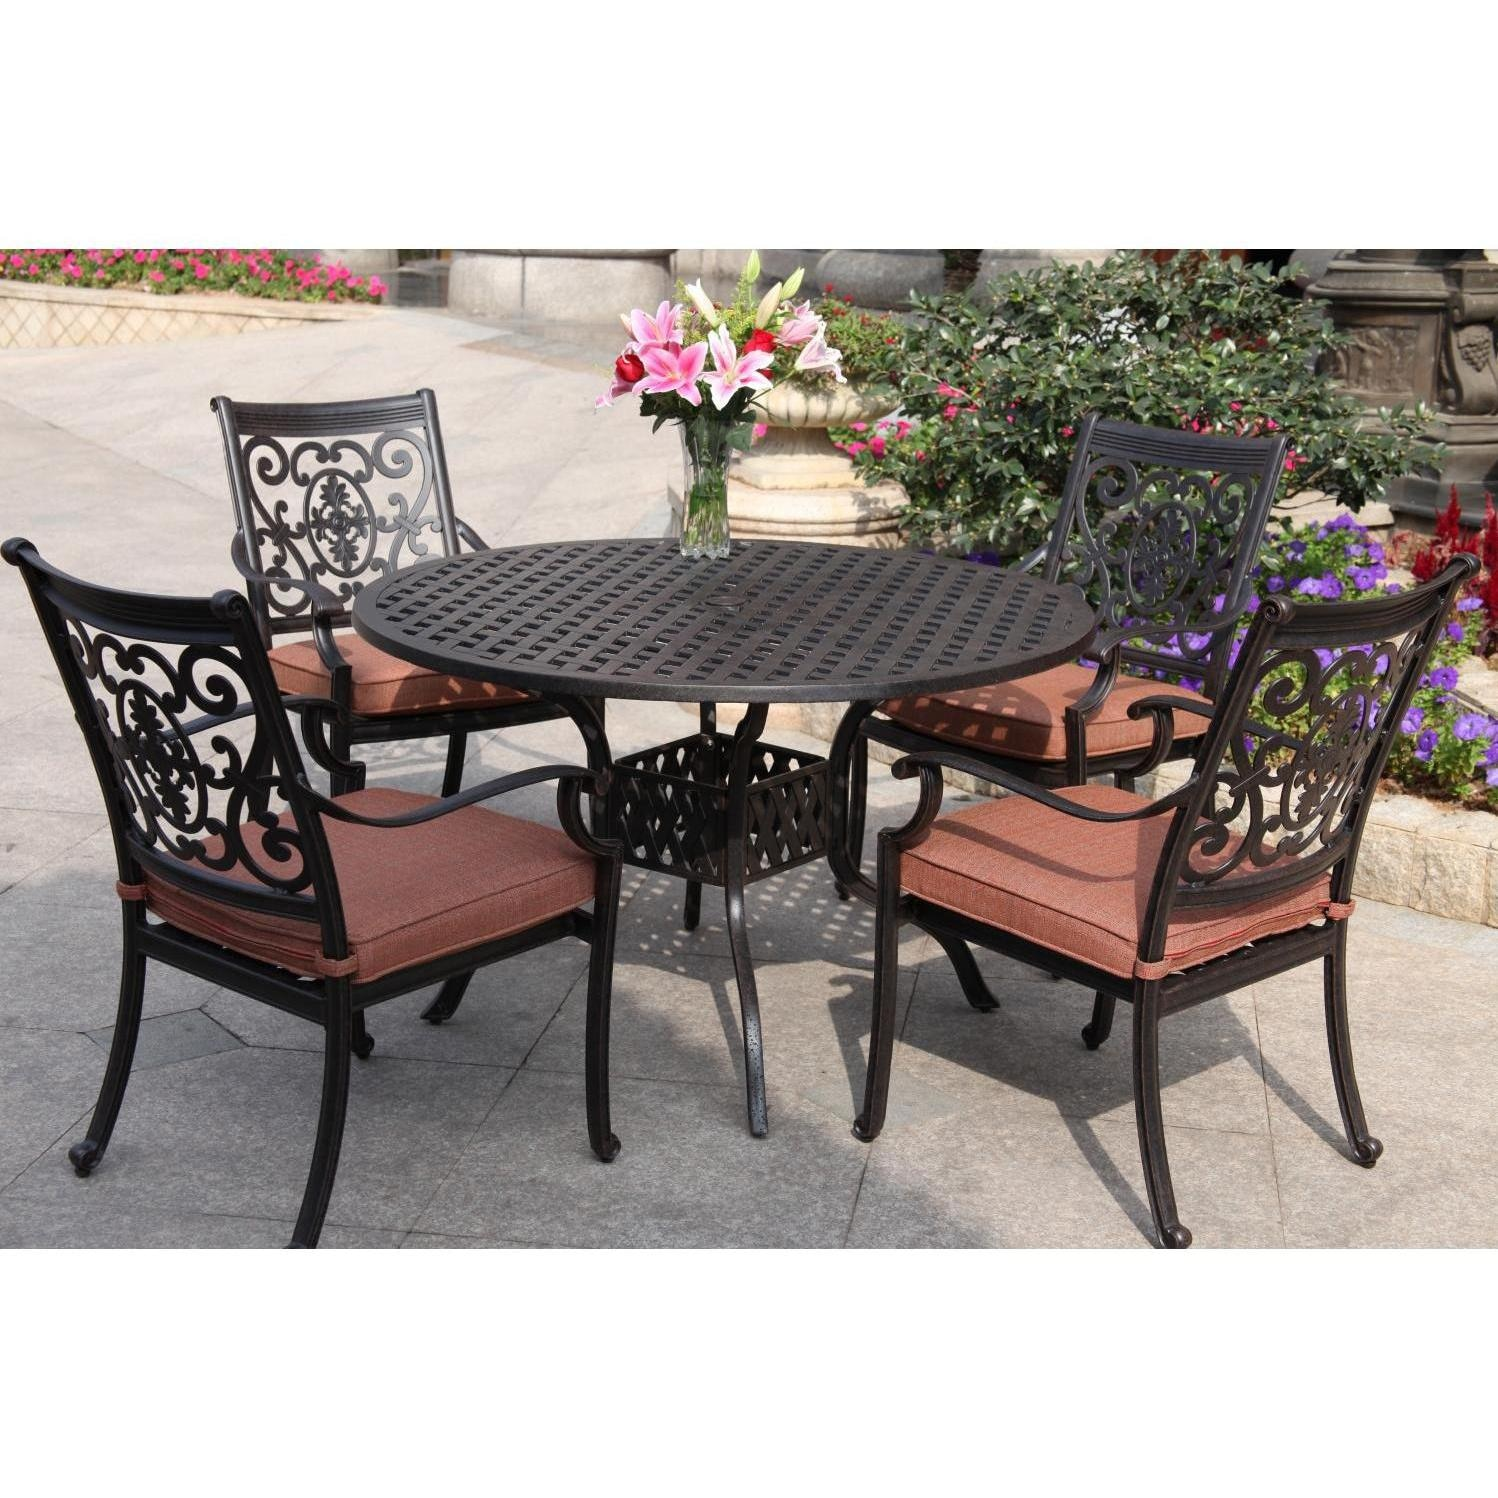 darlee st cruz 5 piece cast aluminum patio dining set with round table ultimate patio. Black Bedroom Furniture Sets. Home Design Ideas